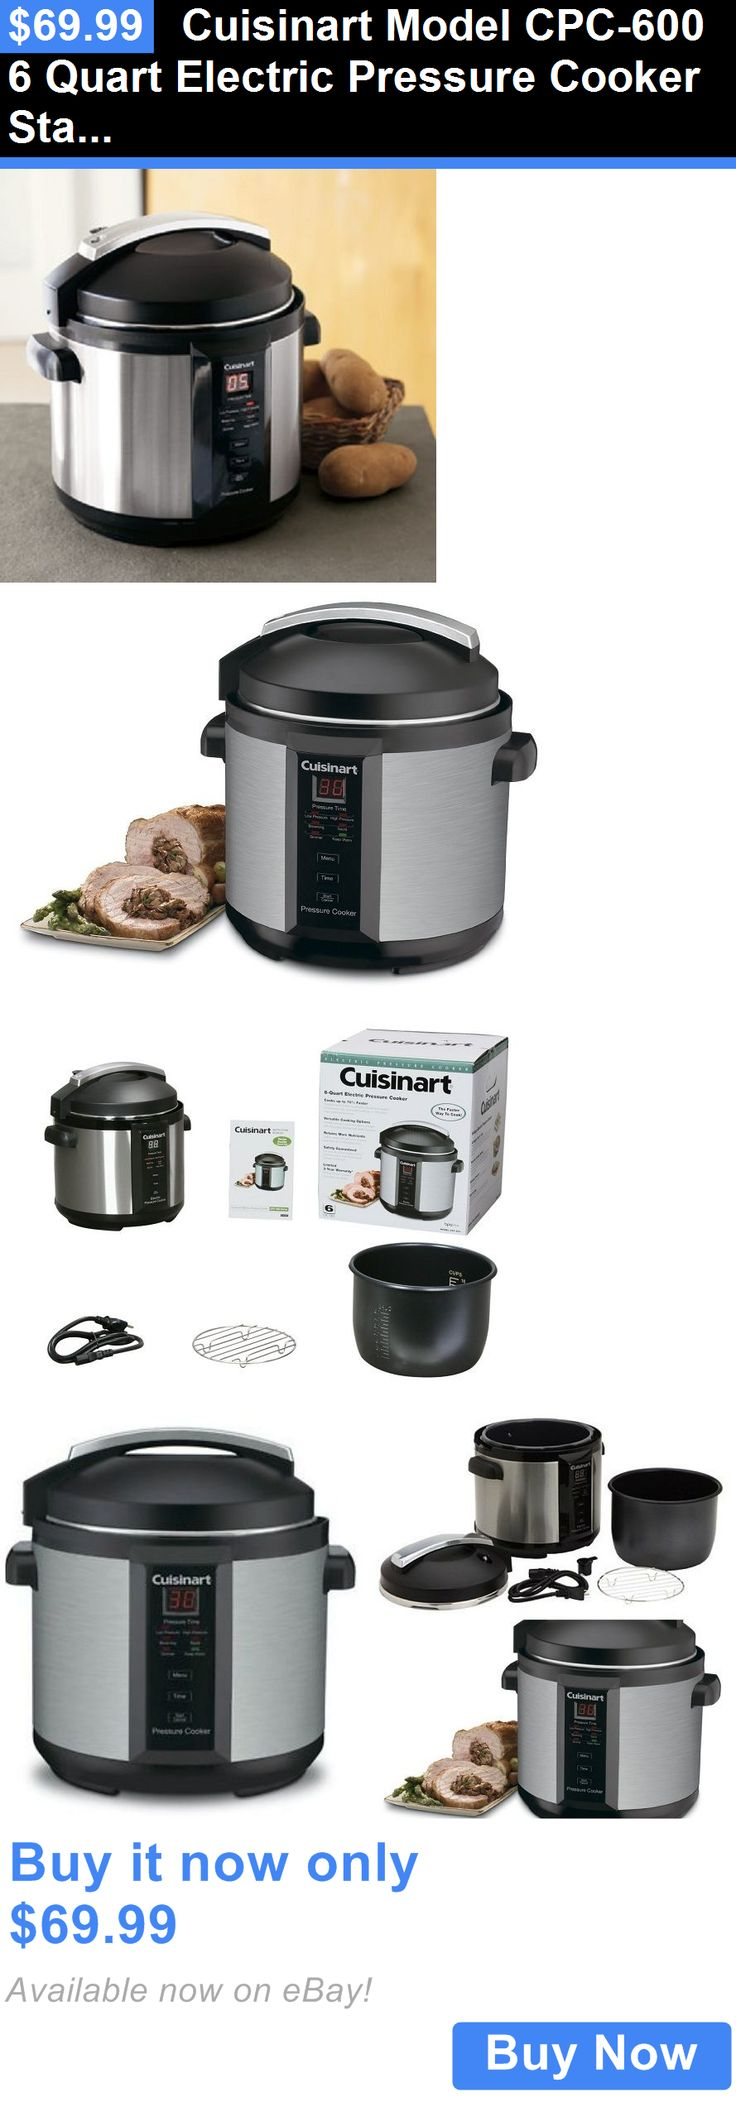 Kitchen small appliance circuit - Small Kitchen Appliances Cuisinart Model Cpc 600 6 Quart Electric Pressure Cooker Stainless Steel